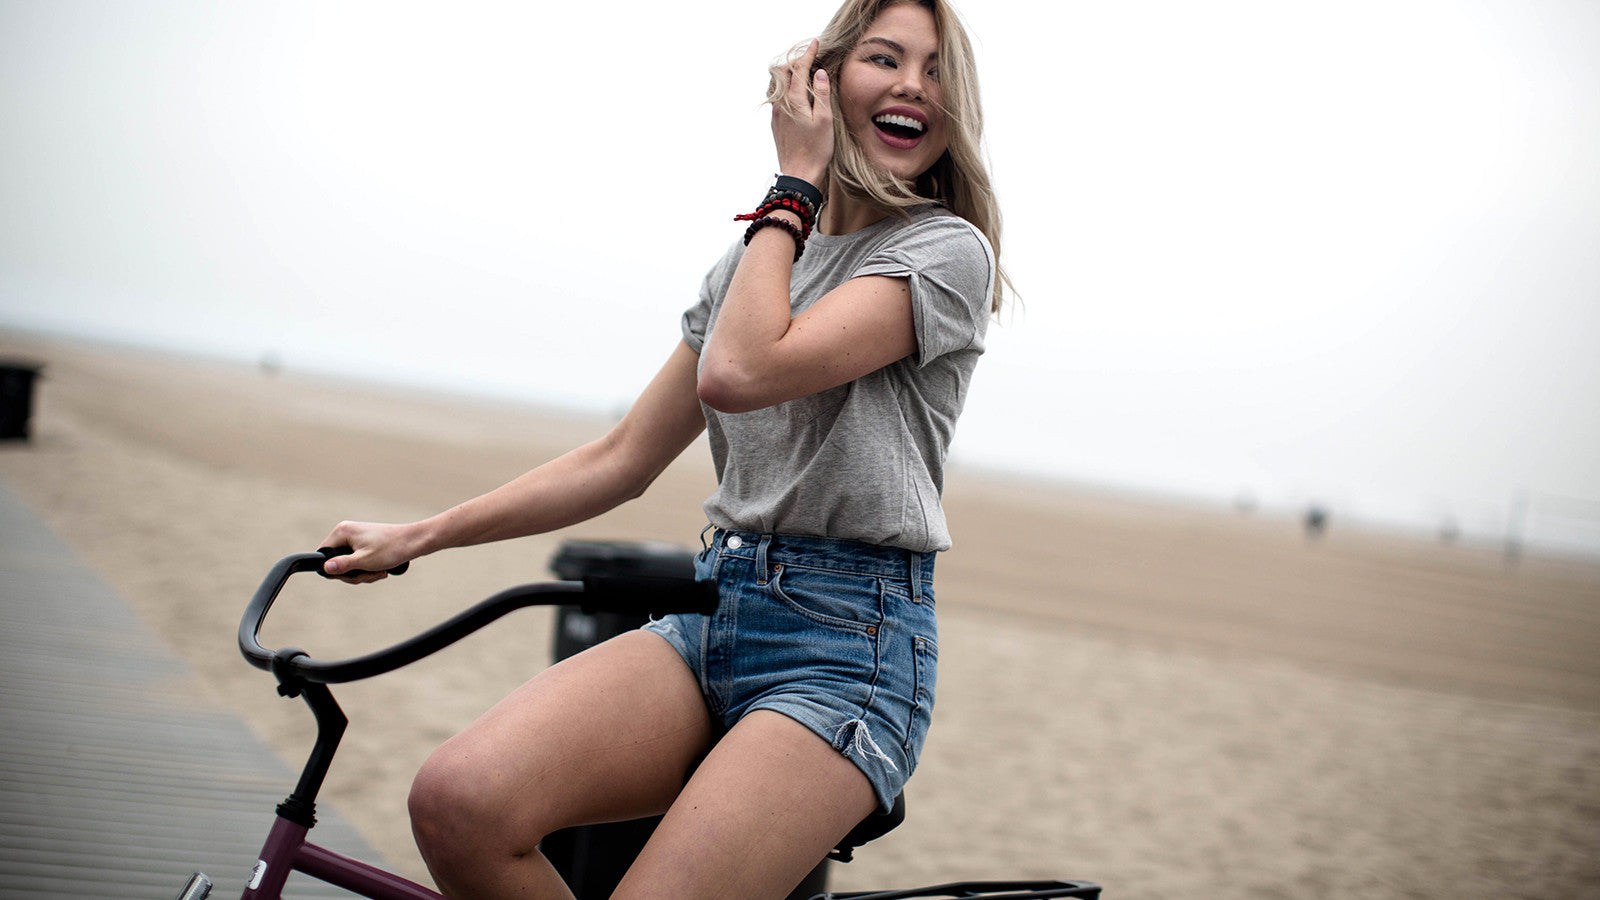 5 Fun Bike Ride Ideas For Any Beach City